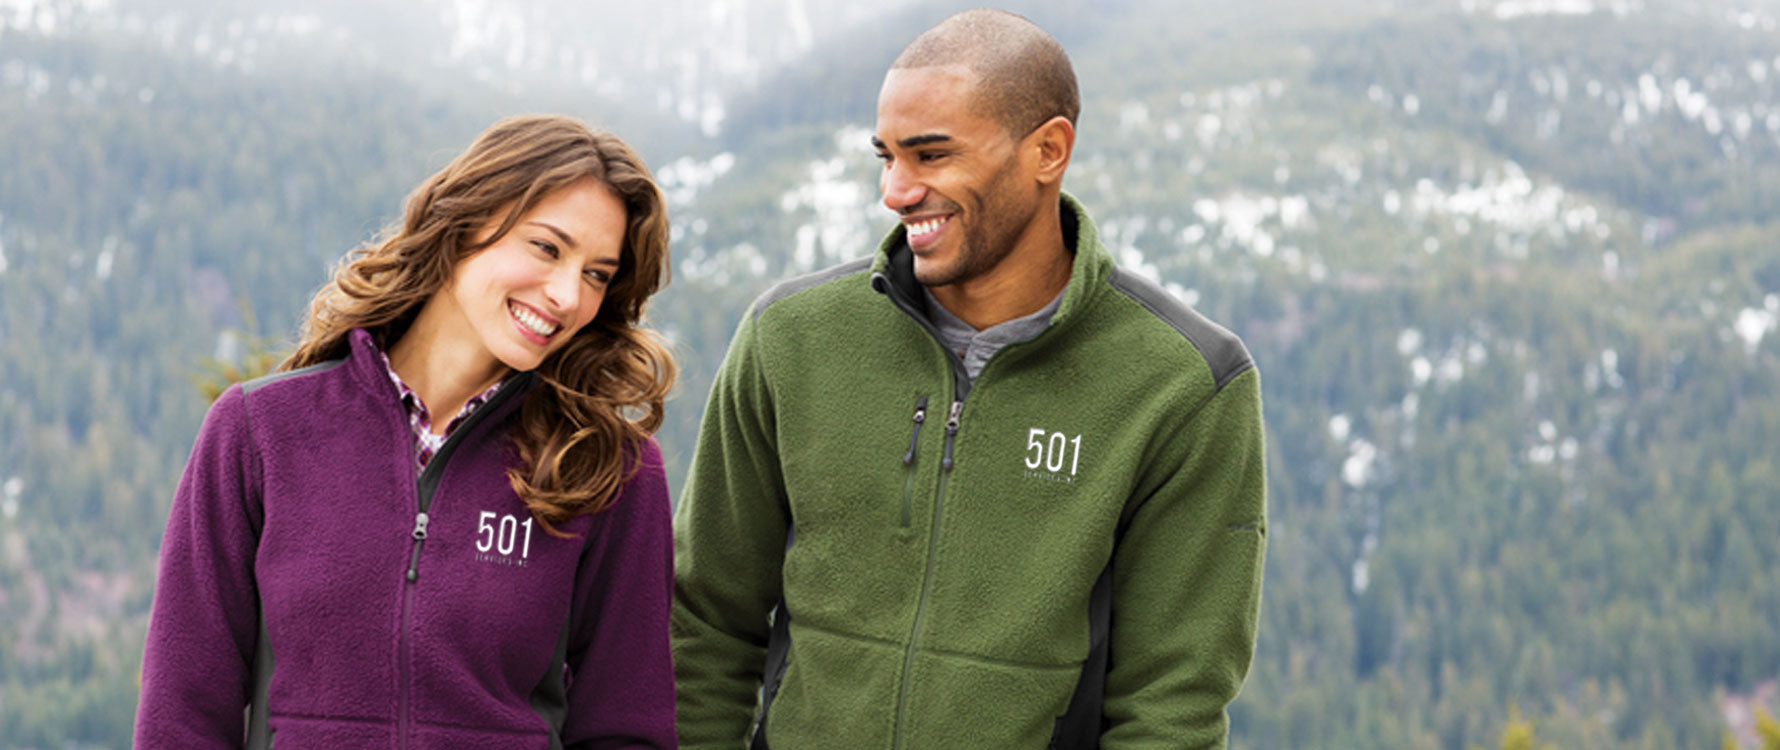 Custom Logo Cool Weather Apparel and Accessory Ideas